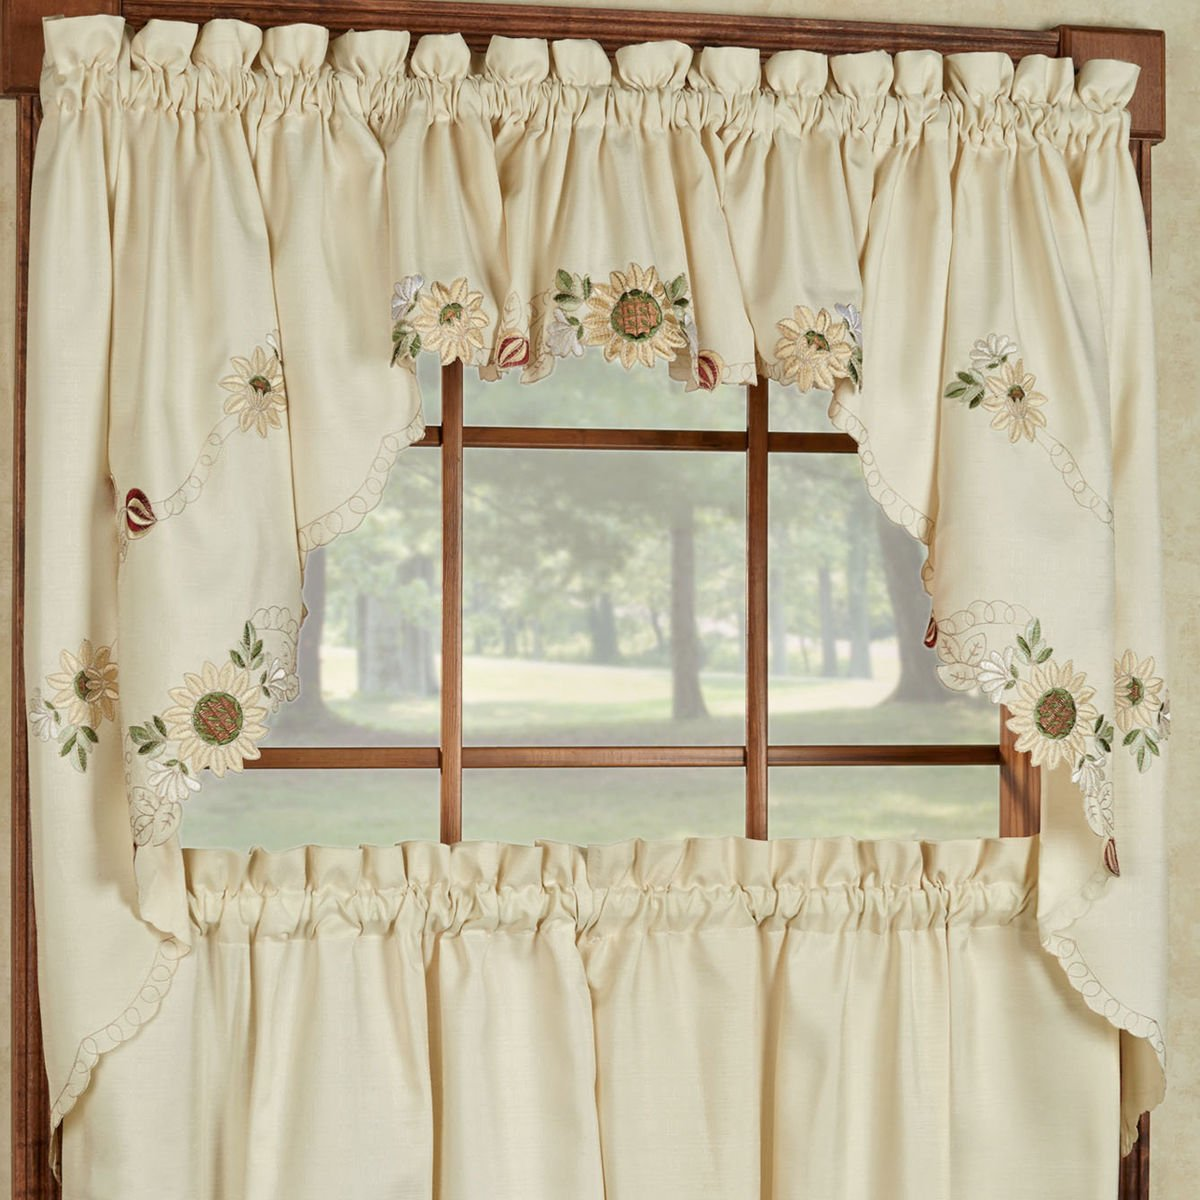 Anzy sunflower cream embroidered kitchen curtains tiers valance or swag swags